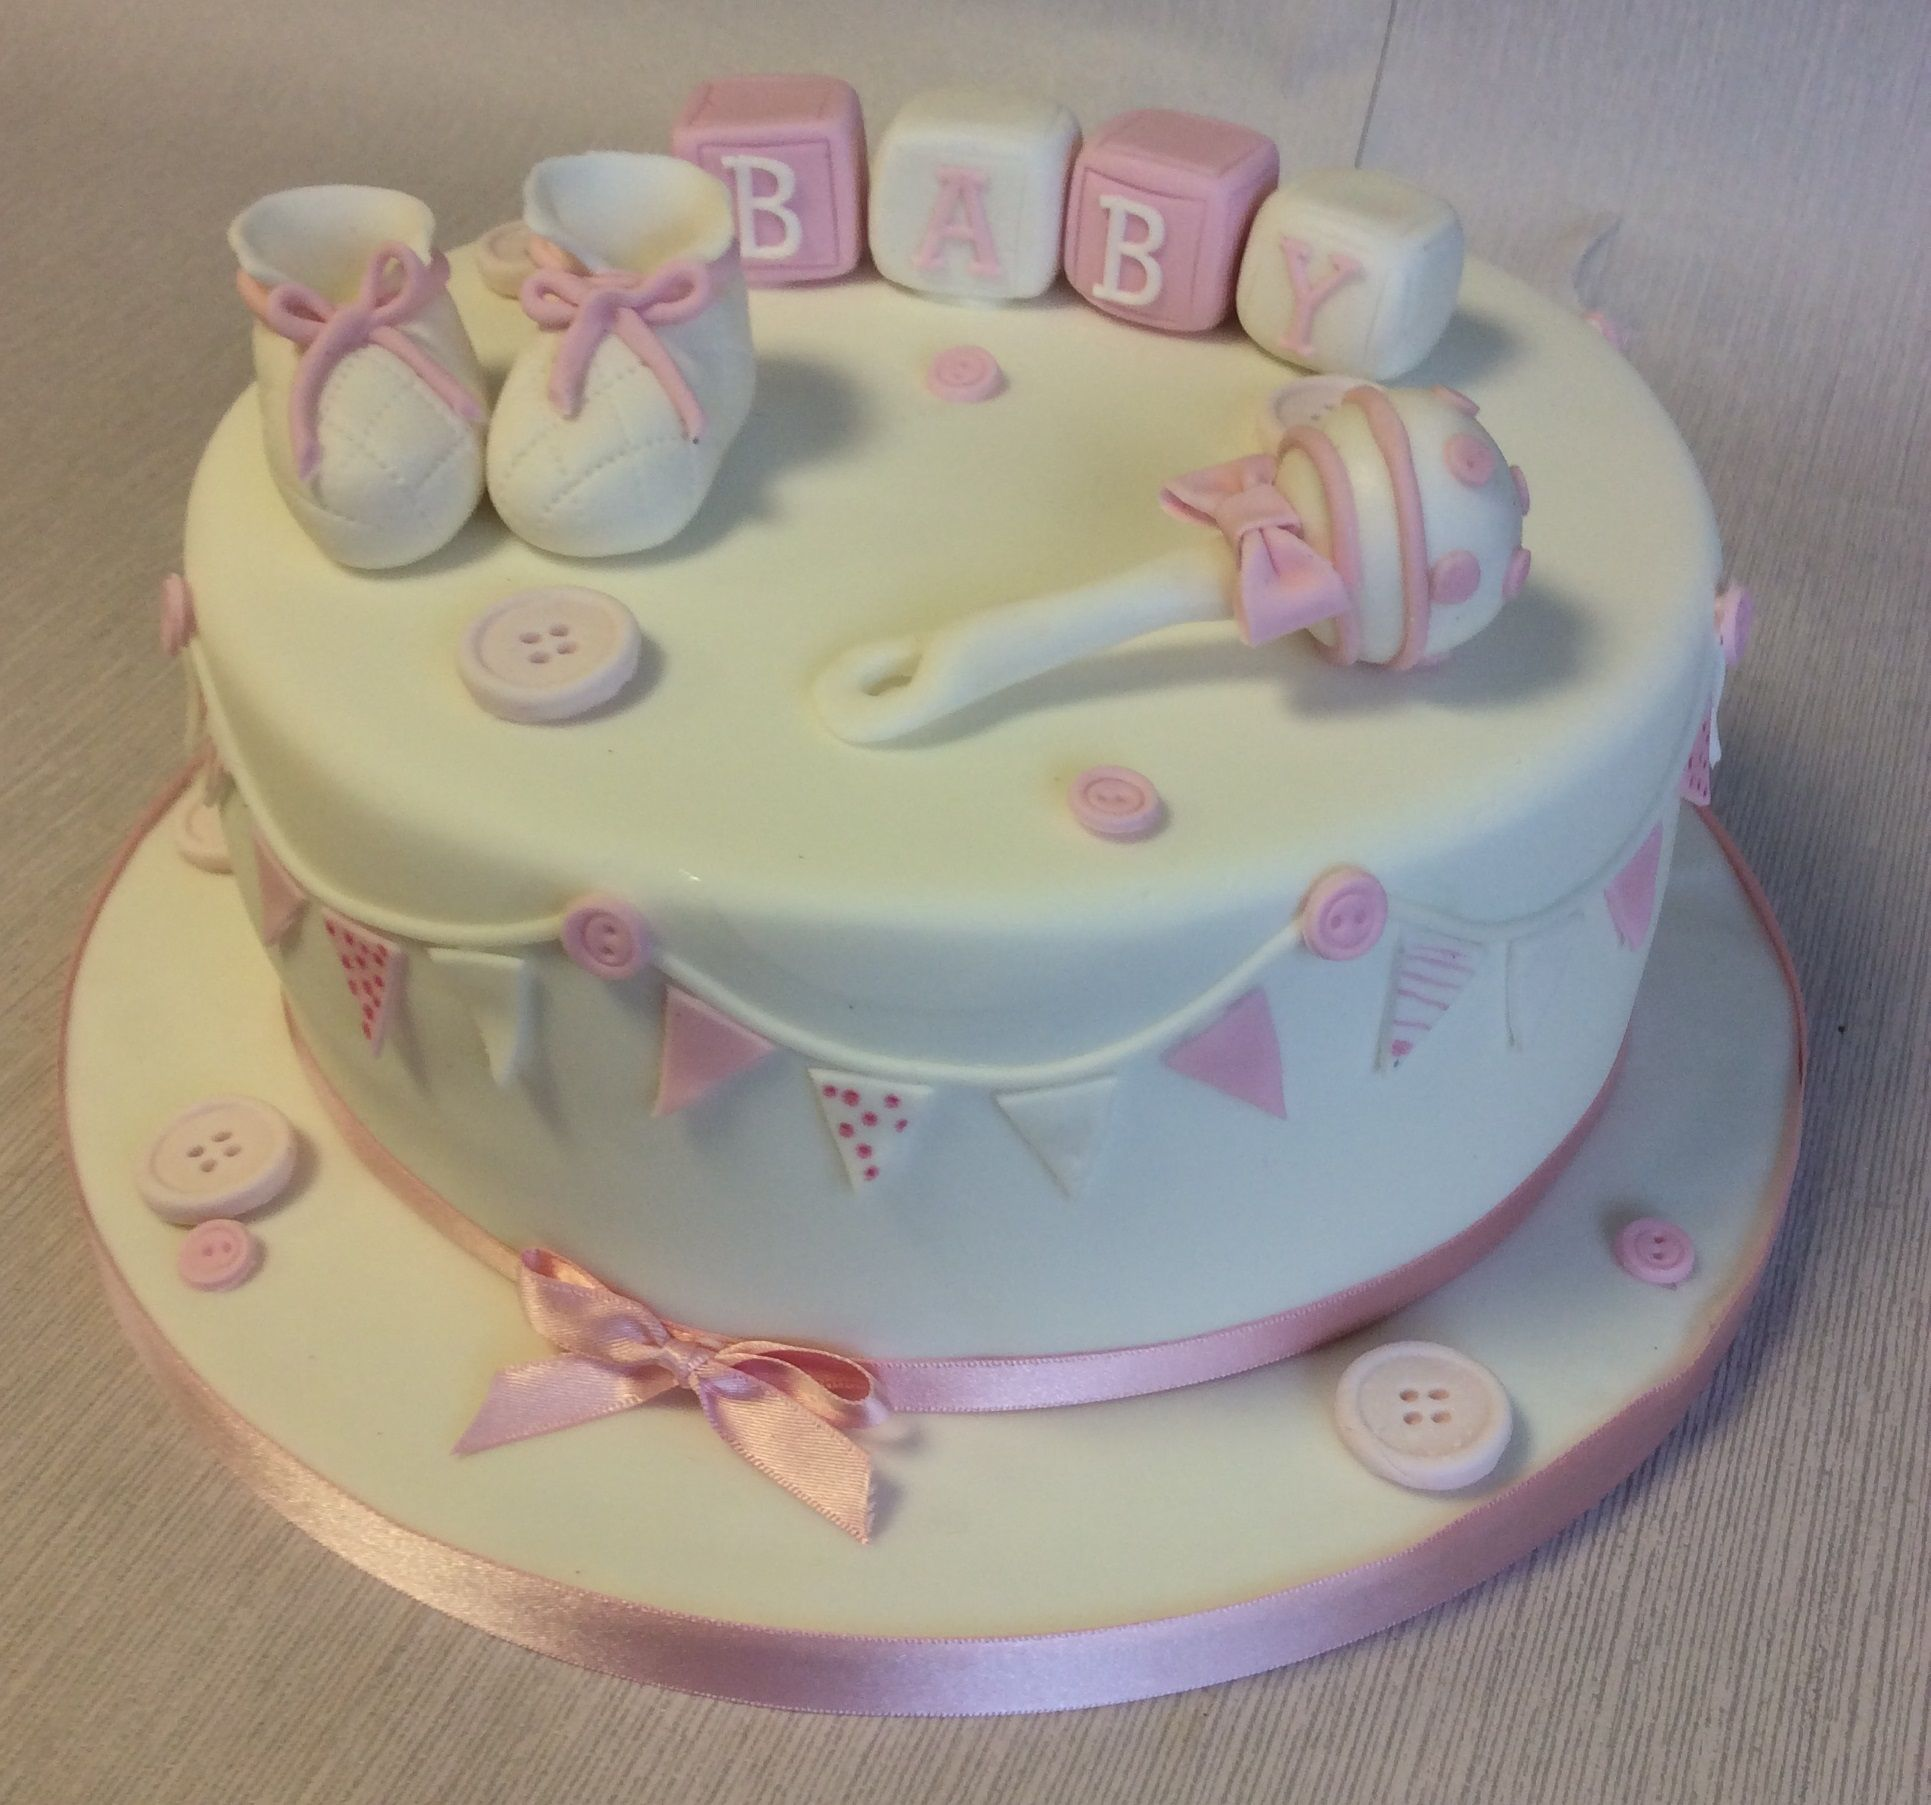 birthday cake for baby girl traditional baby shower cake for a baby 1745